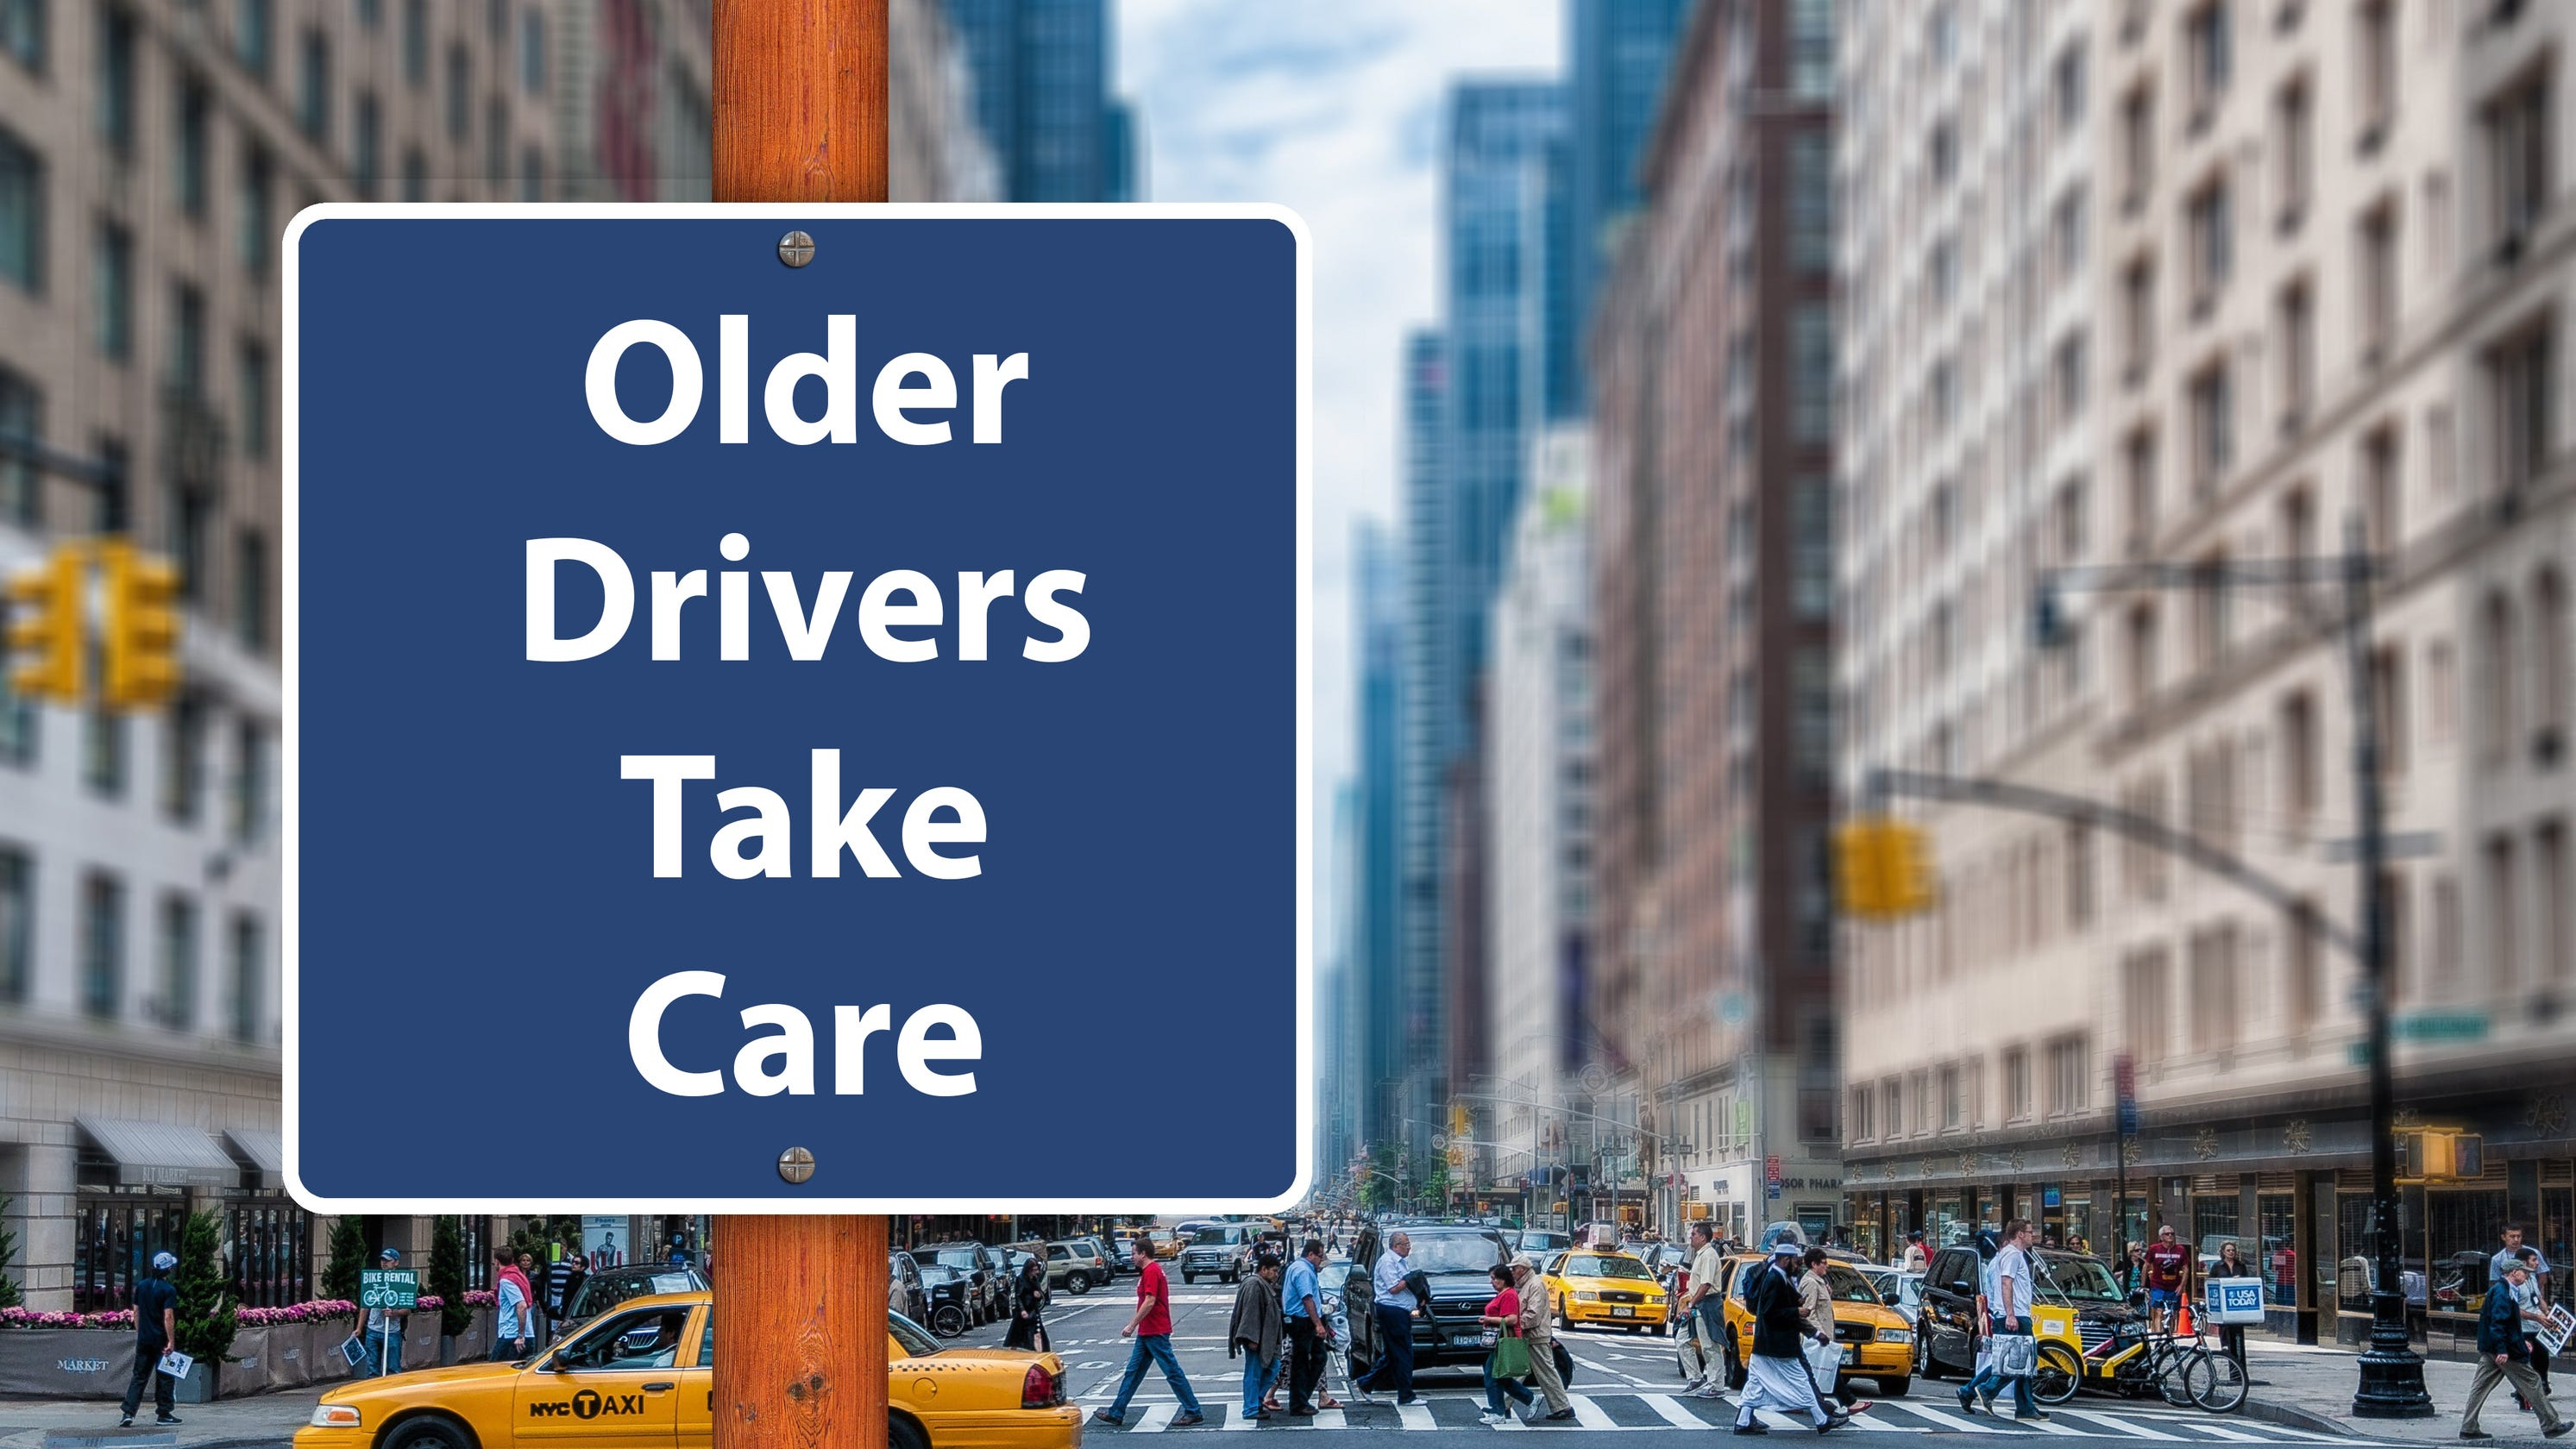 Driving safety for older adults: Watch for changes, make adjustments